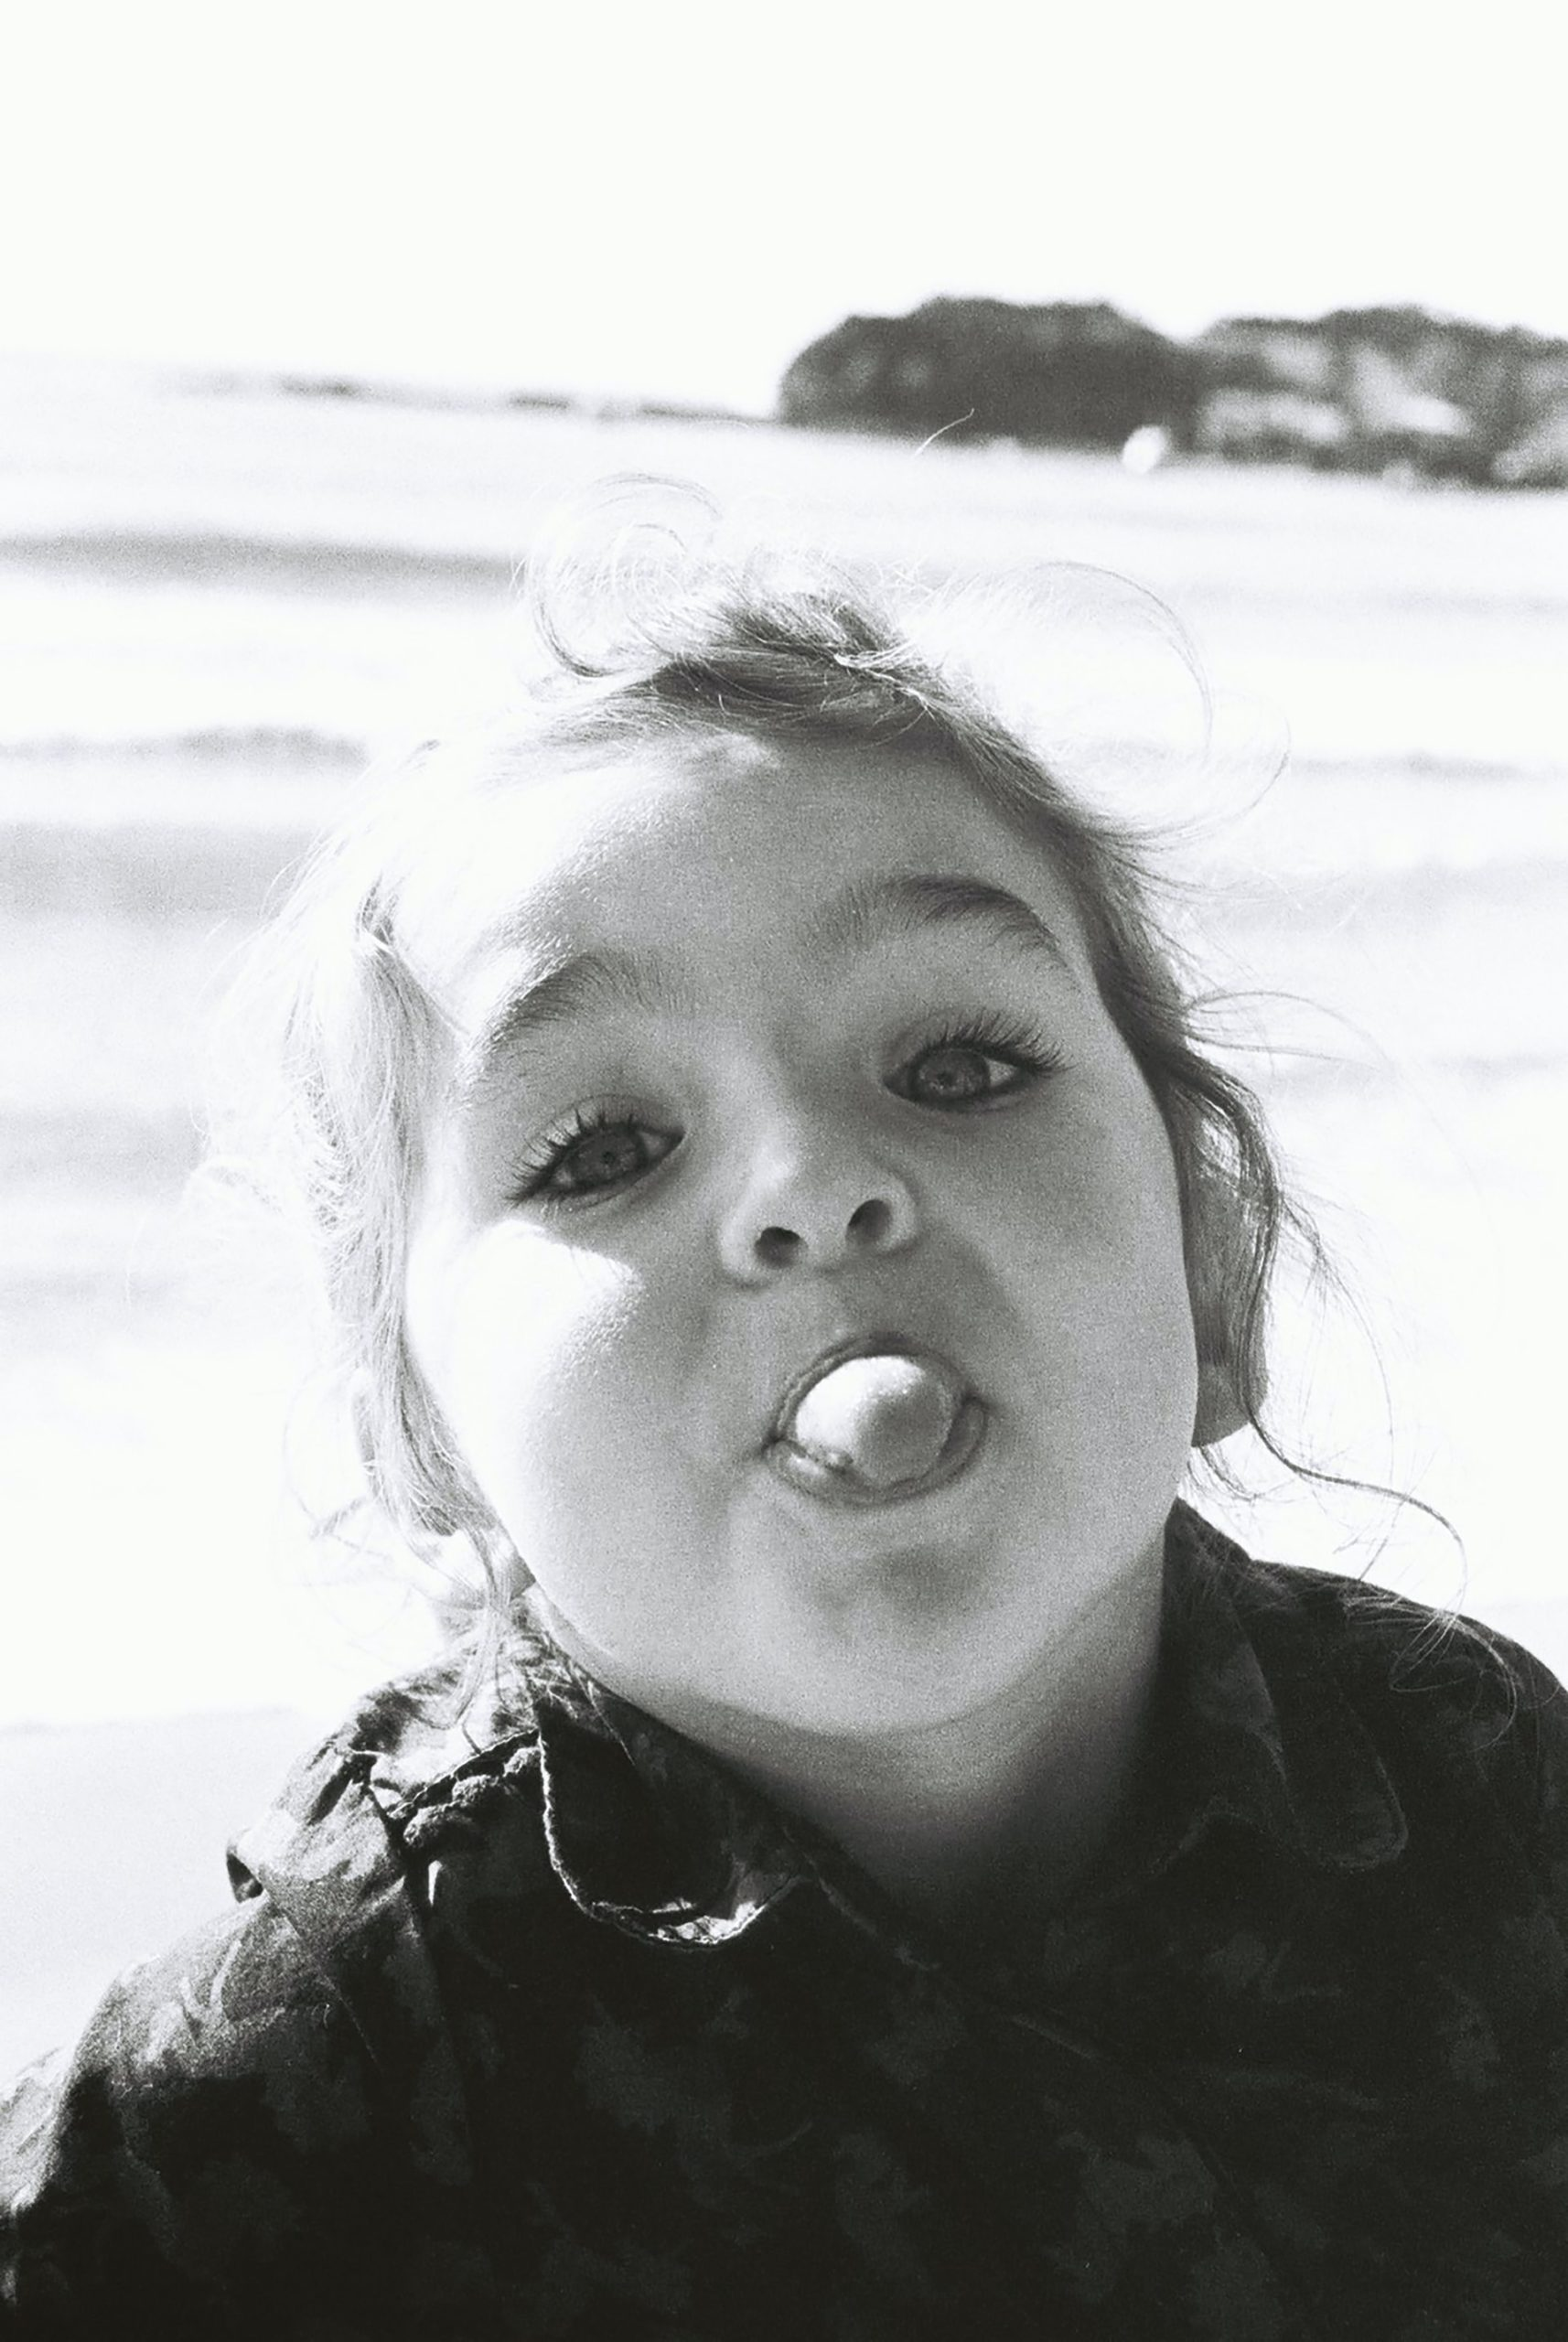 A young girl sticking her tongue out as she understands her characteristics as a Highly Sensitive Person.